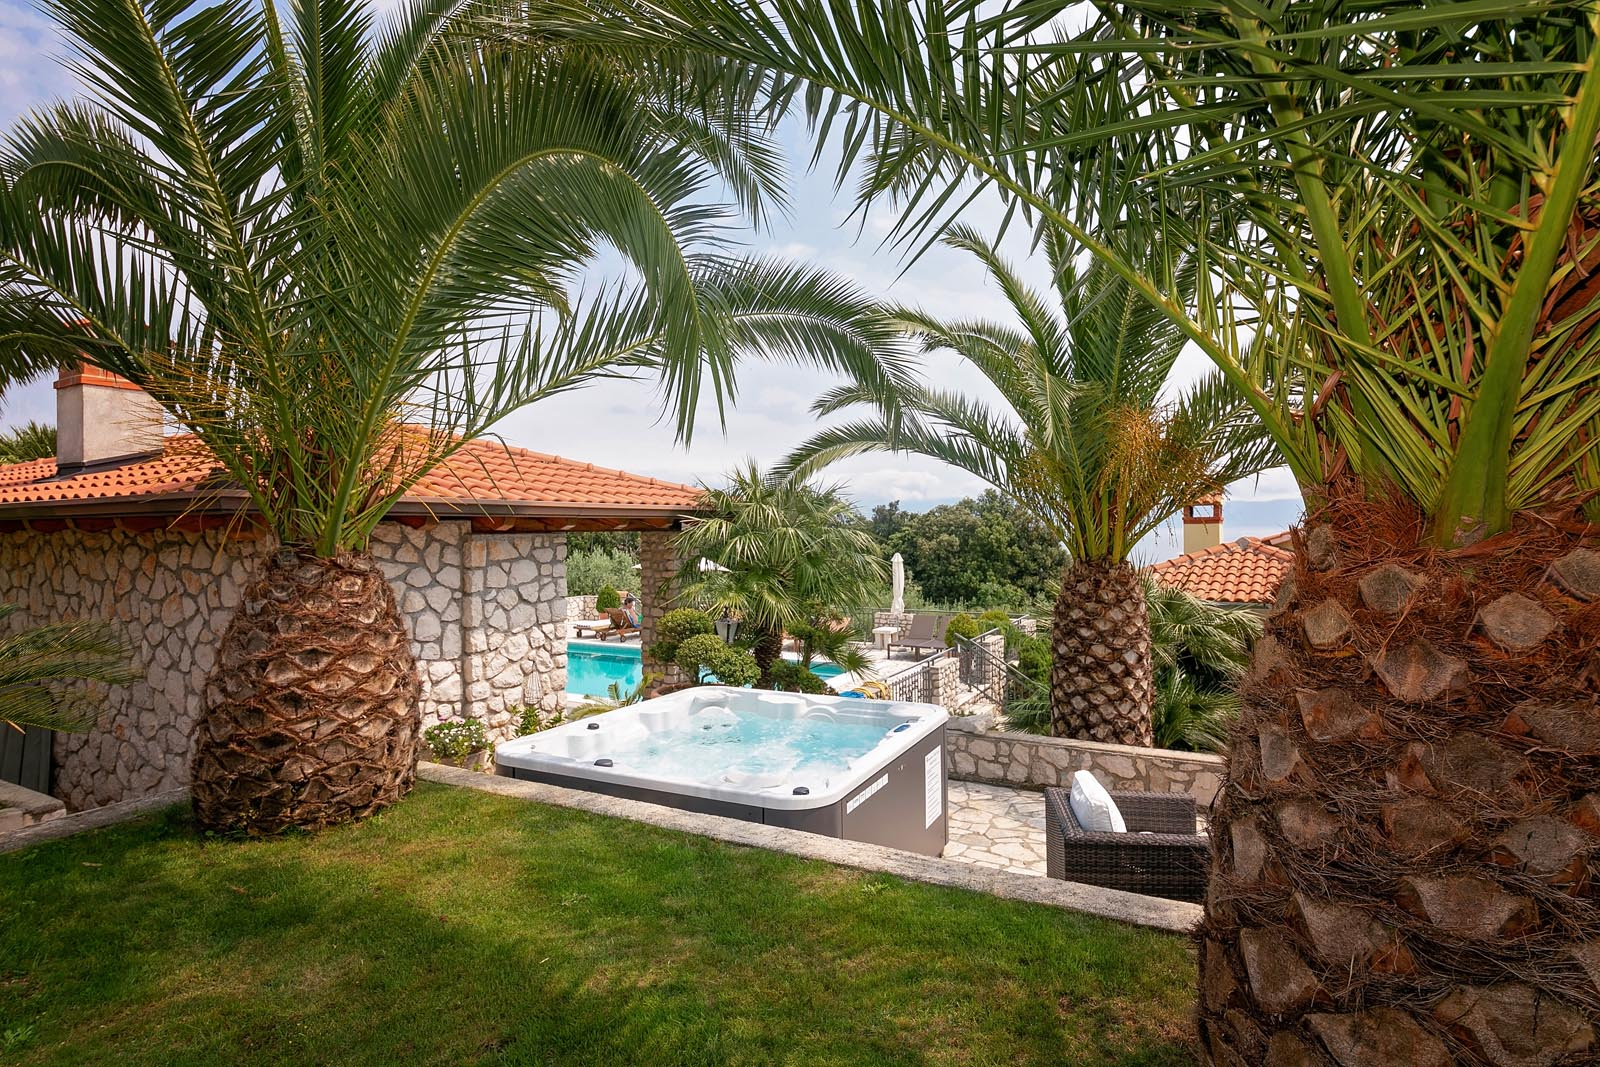 Private terrace with jacuzzi and access to the swimming pool